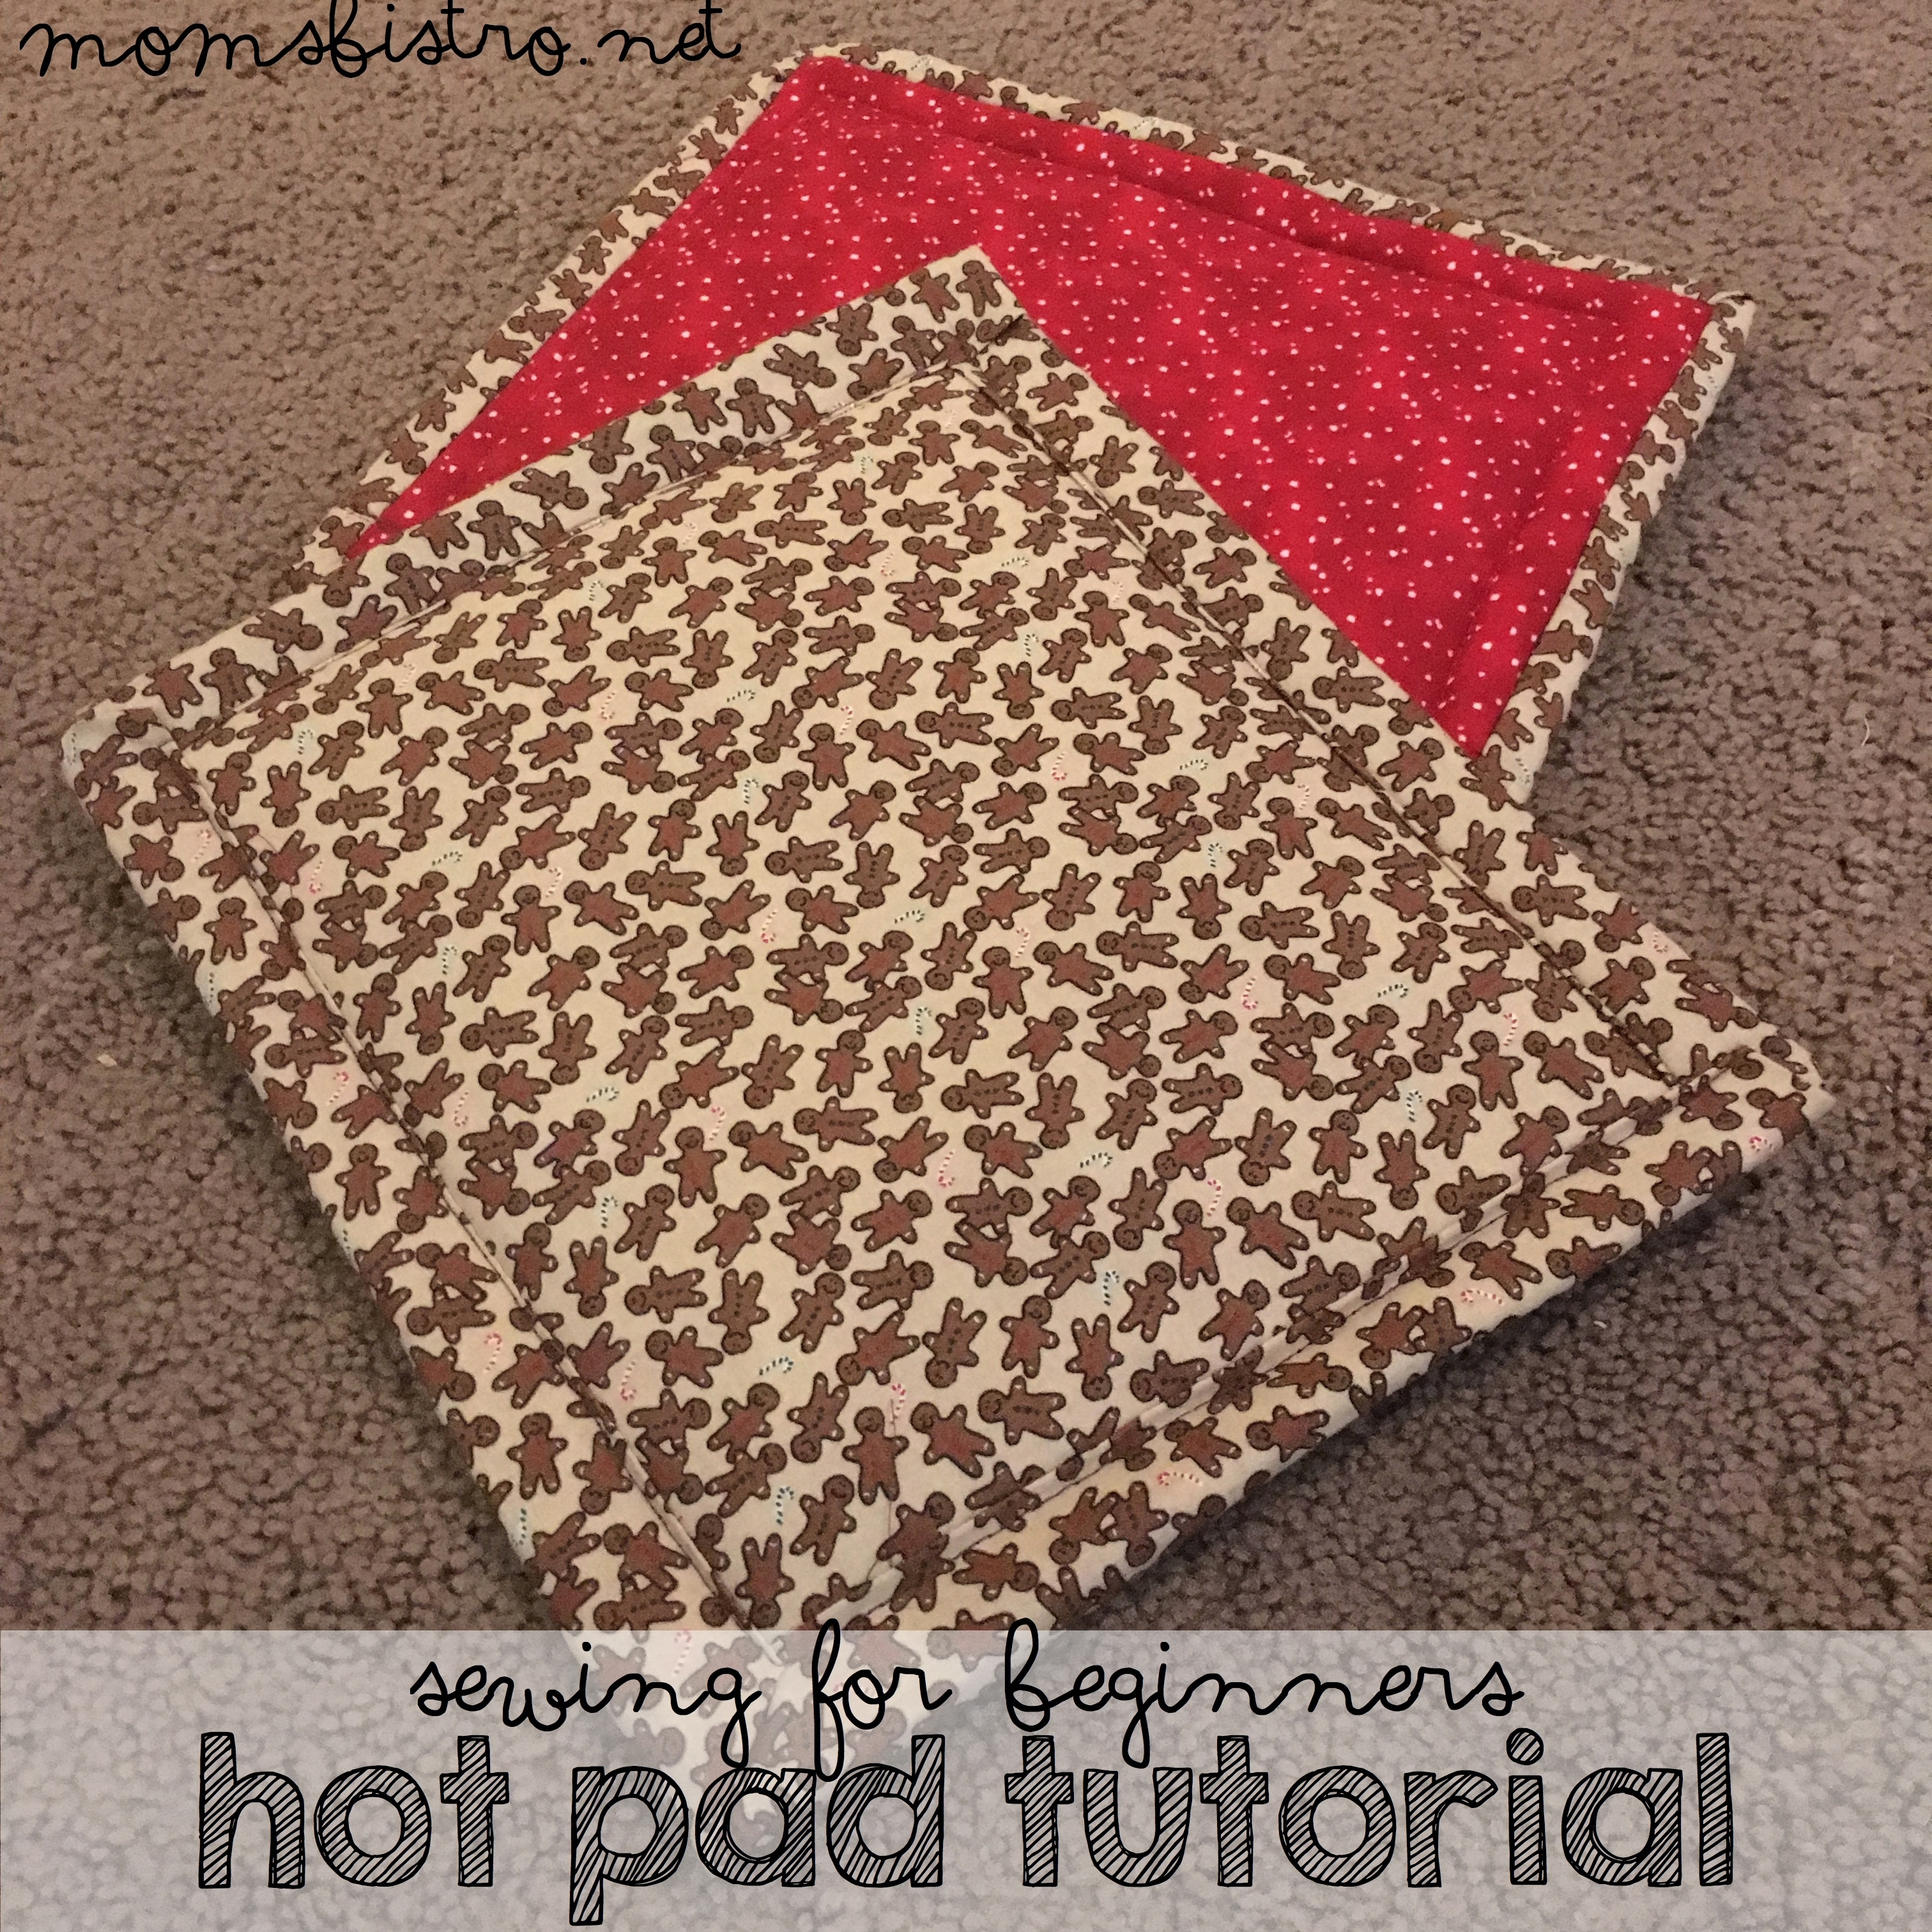 Looking For A Great DIY Gift For Grandparents?  Make These Easy To Sew Christmas Pot Holders with Hand or Footprints!  | Sewing For Beginners Hot Pad Tutorial